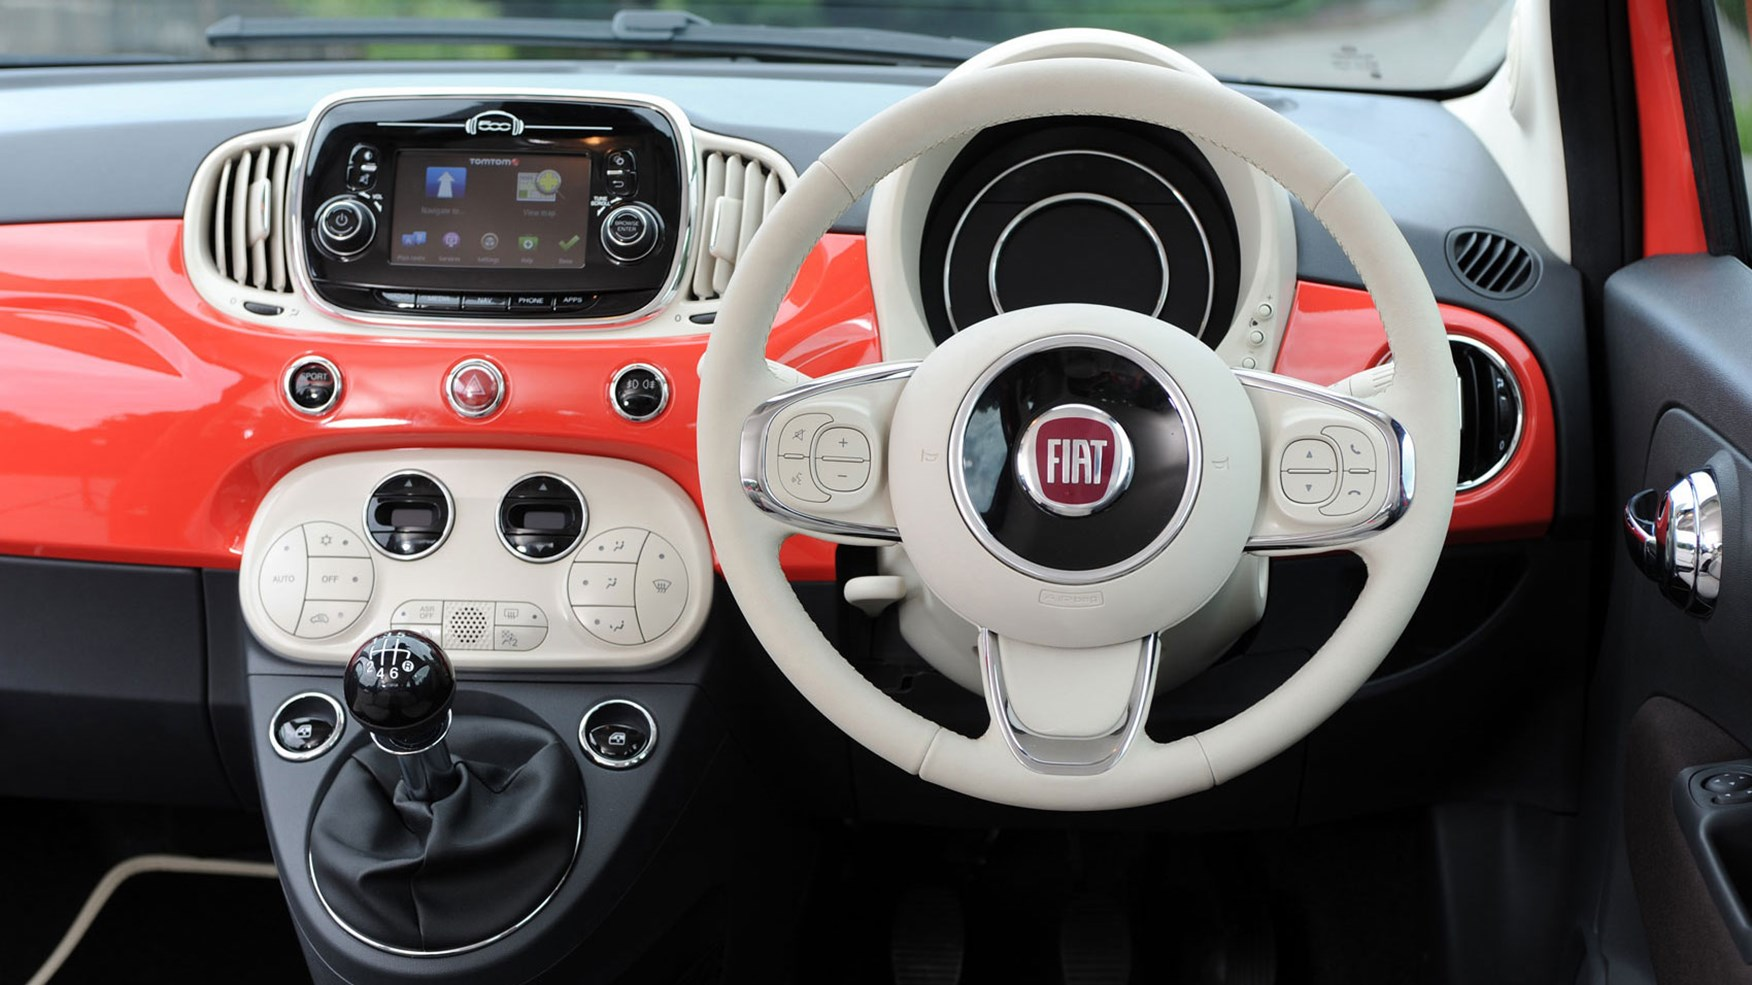 Image Result For Ford Ka Radio With Aux